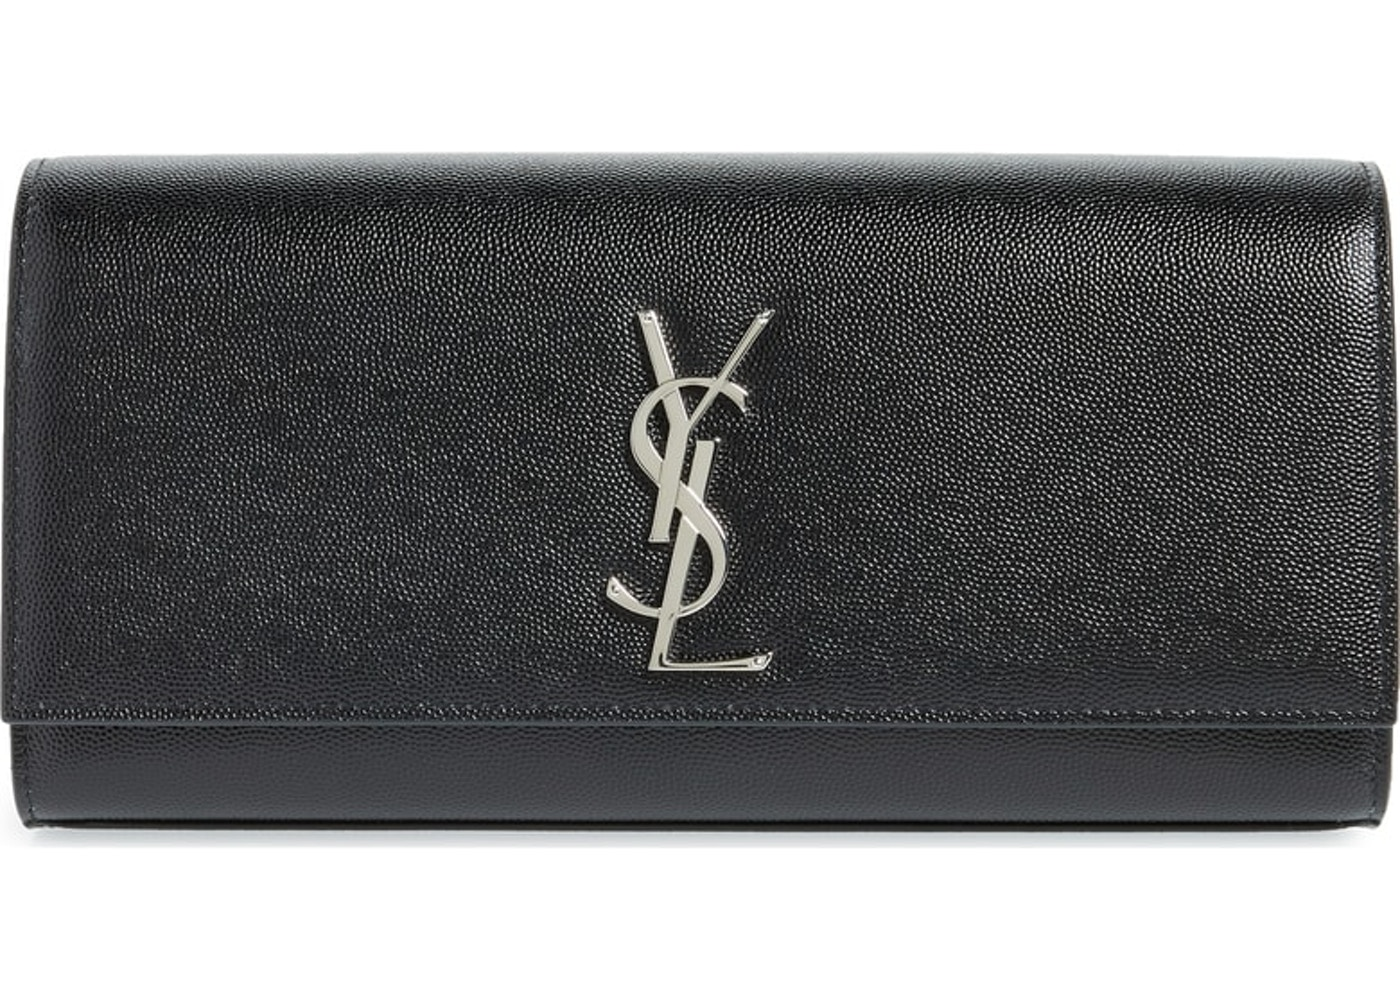 for sale best selection of 2019 best wholesaler Saint Laurent Clutch Kate YSL Silver-Tone Black